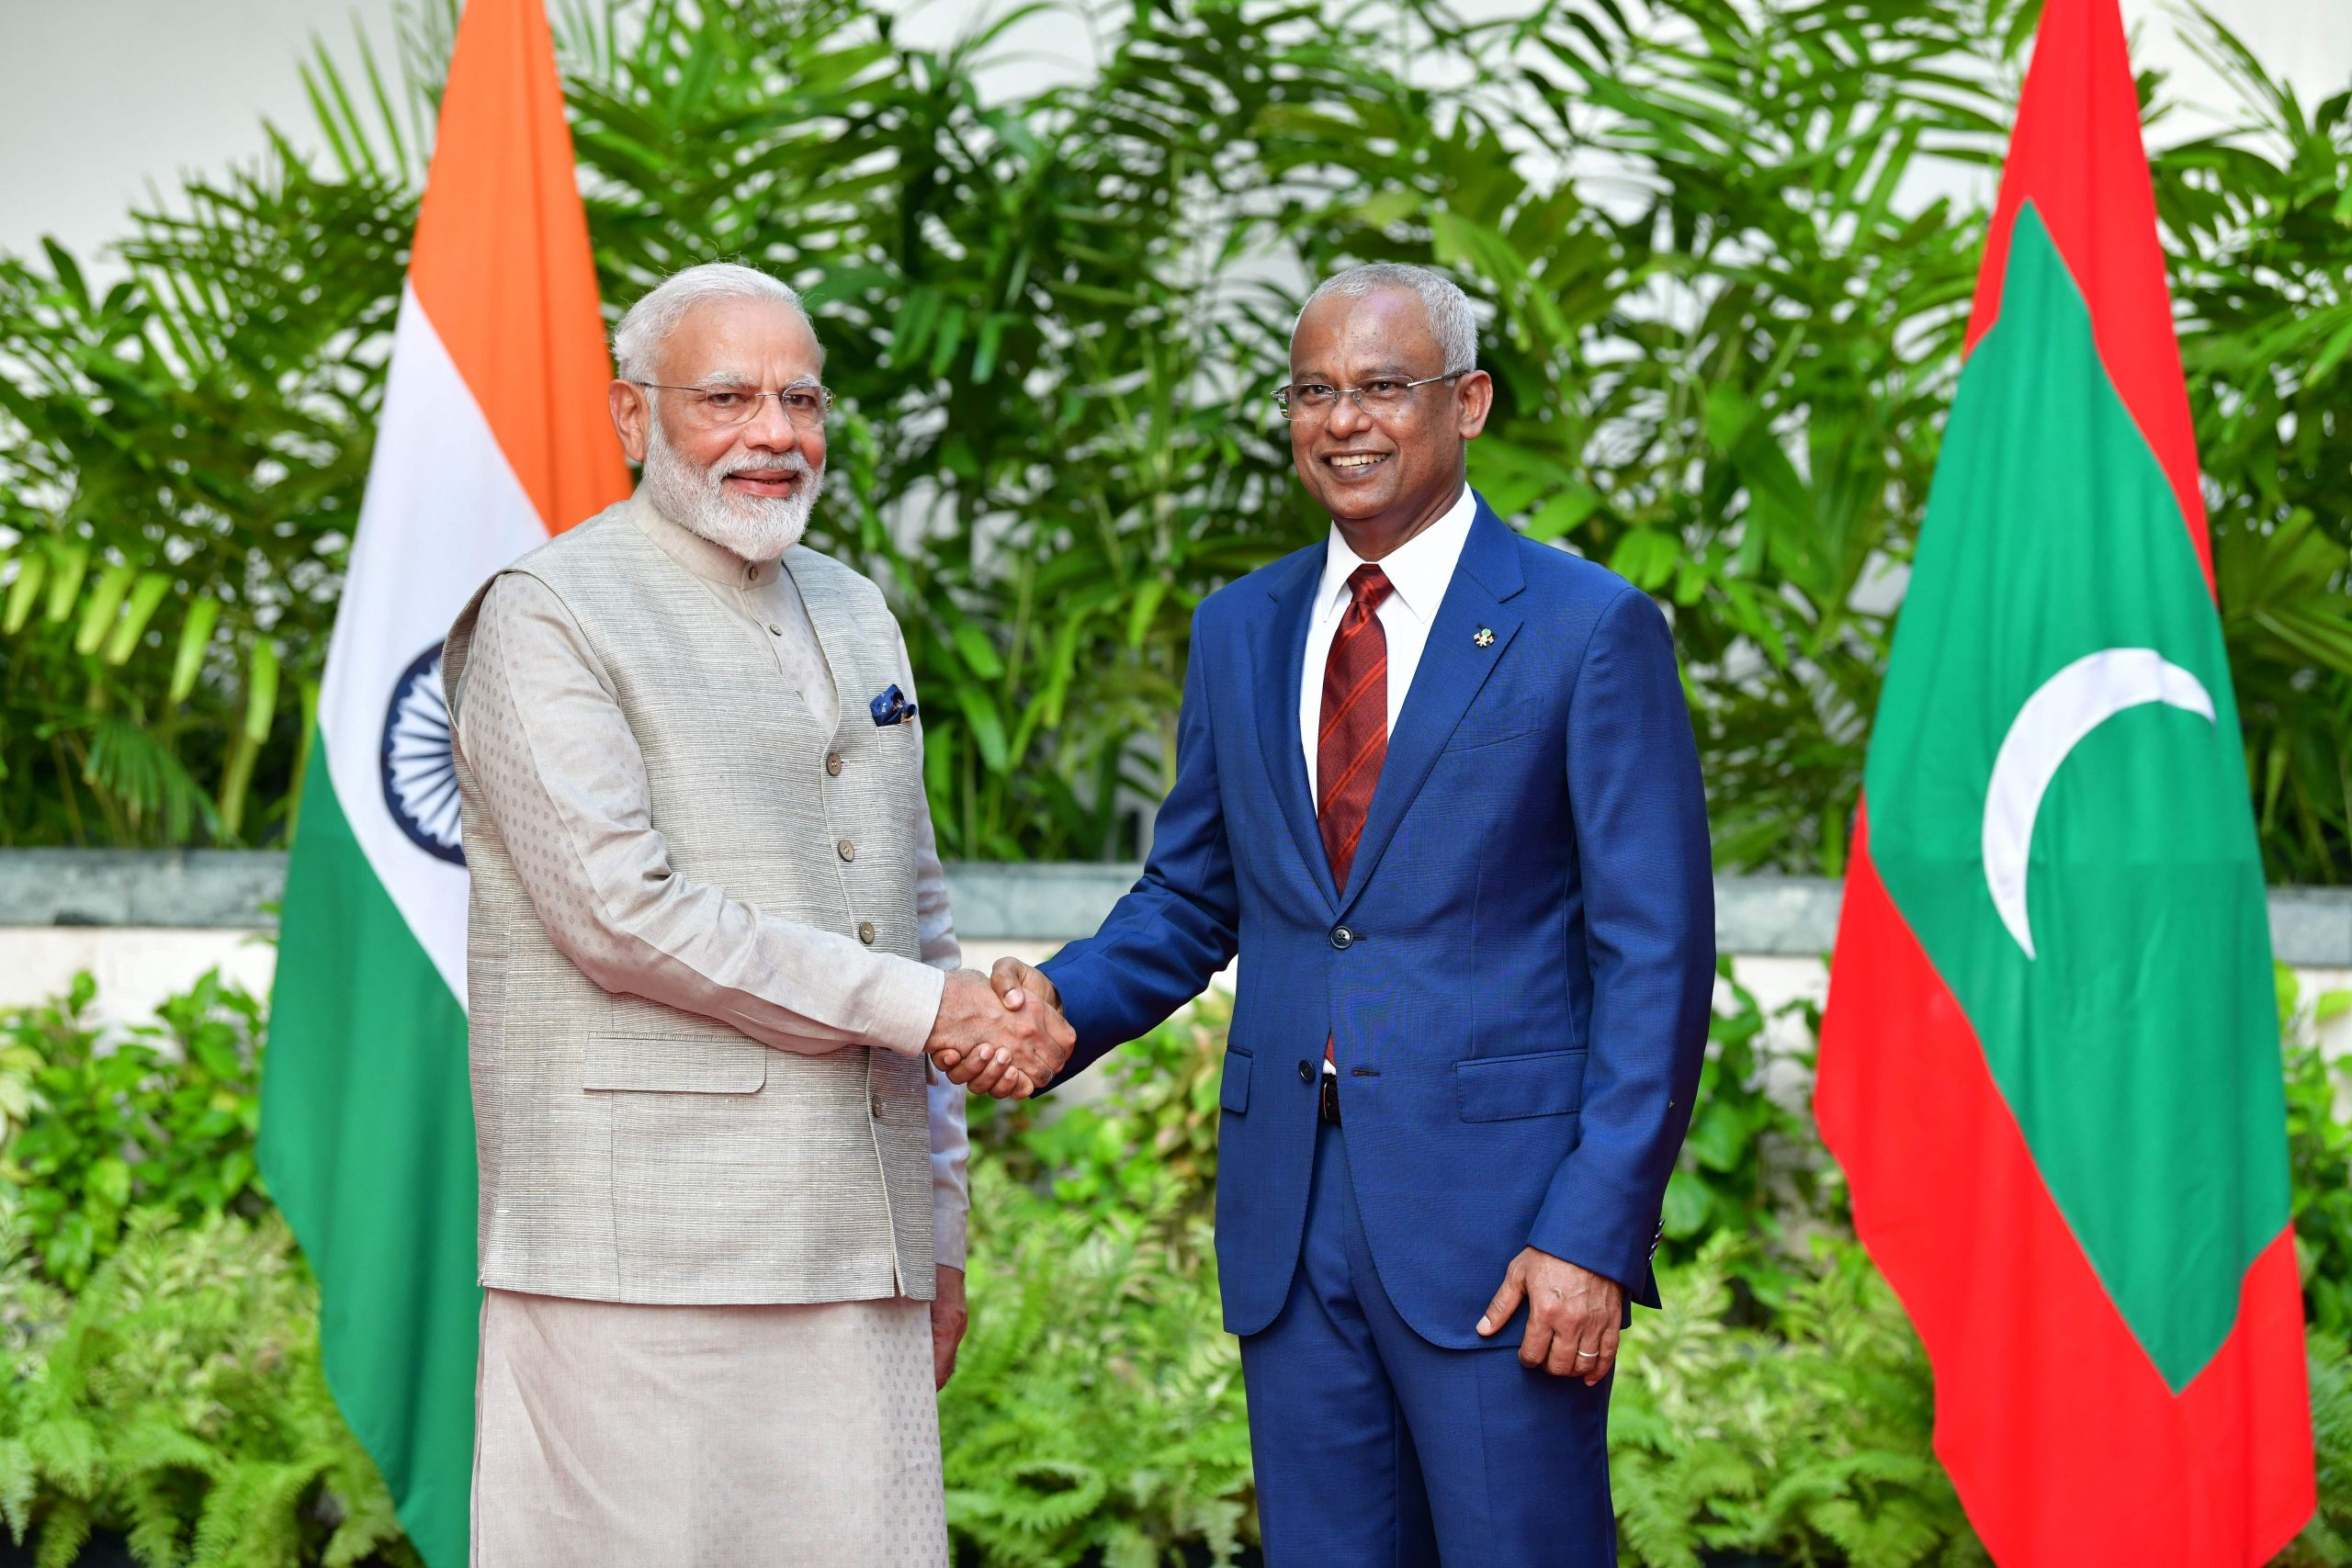 In this picture taken on June 8, 2019, Indian Prime Minister Narendra Modi (L) shakes hands with President of Maldives Ibrahim Mohamed Solih during his one-day visit to Maldives (       (STR/AFP via Getty Images)